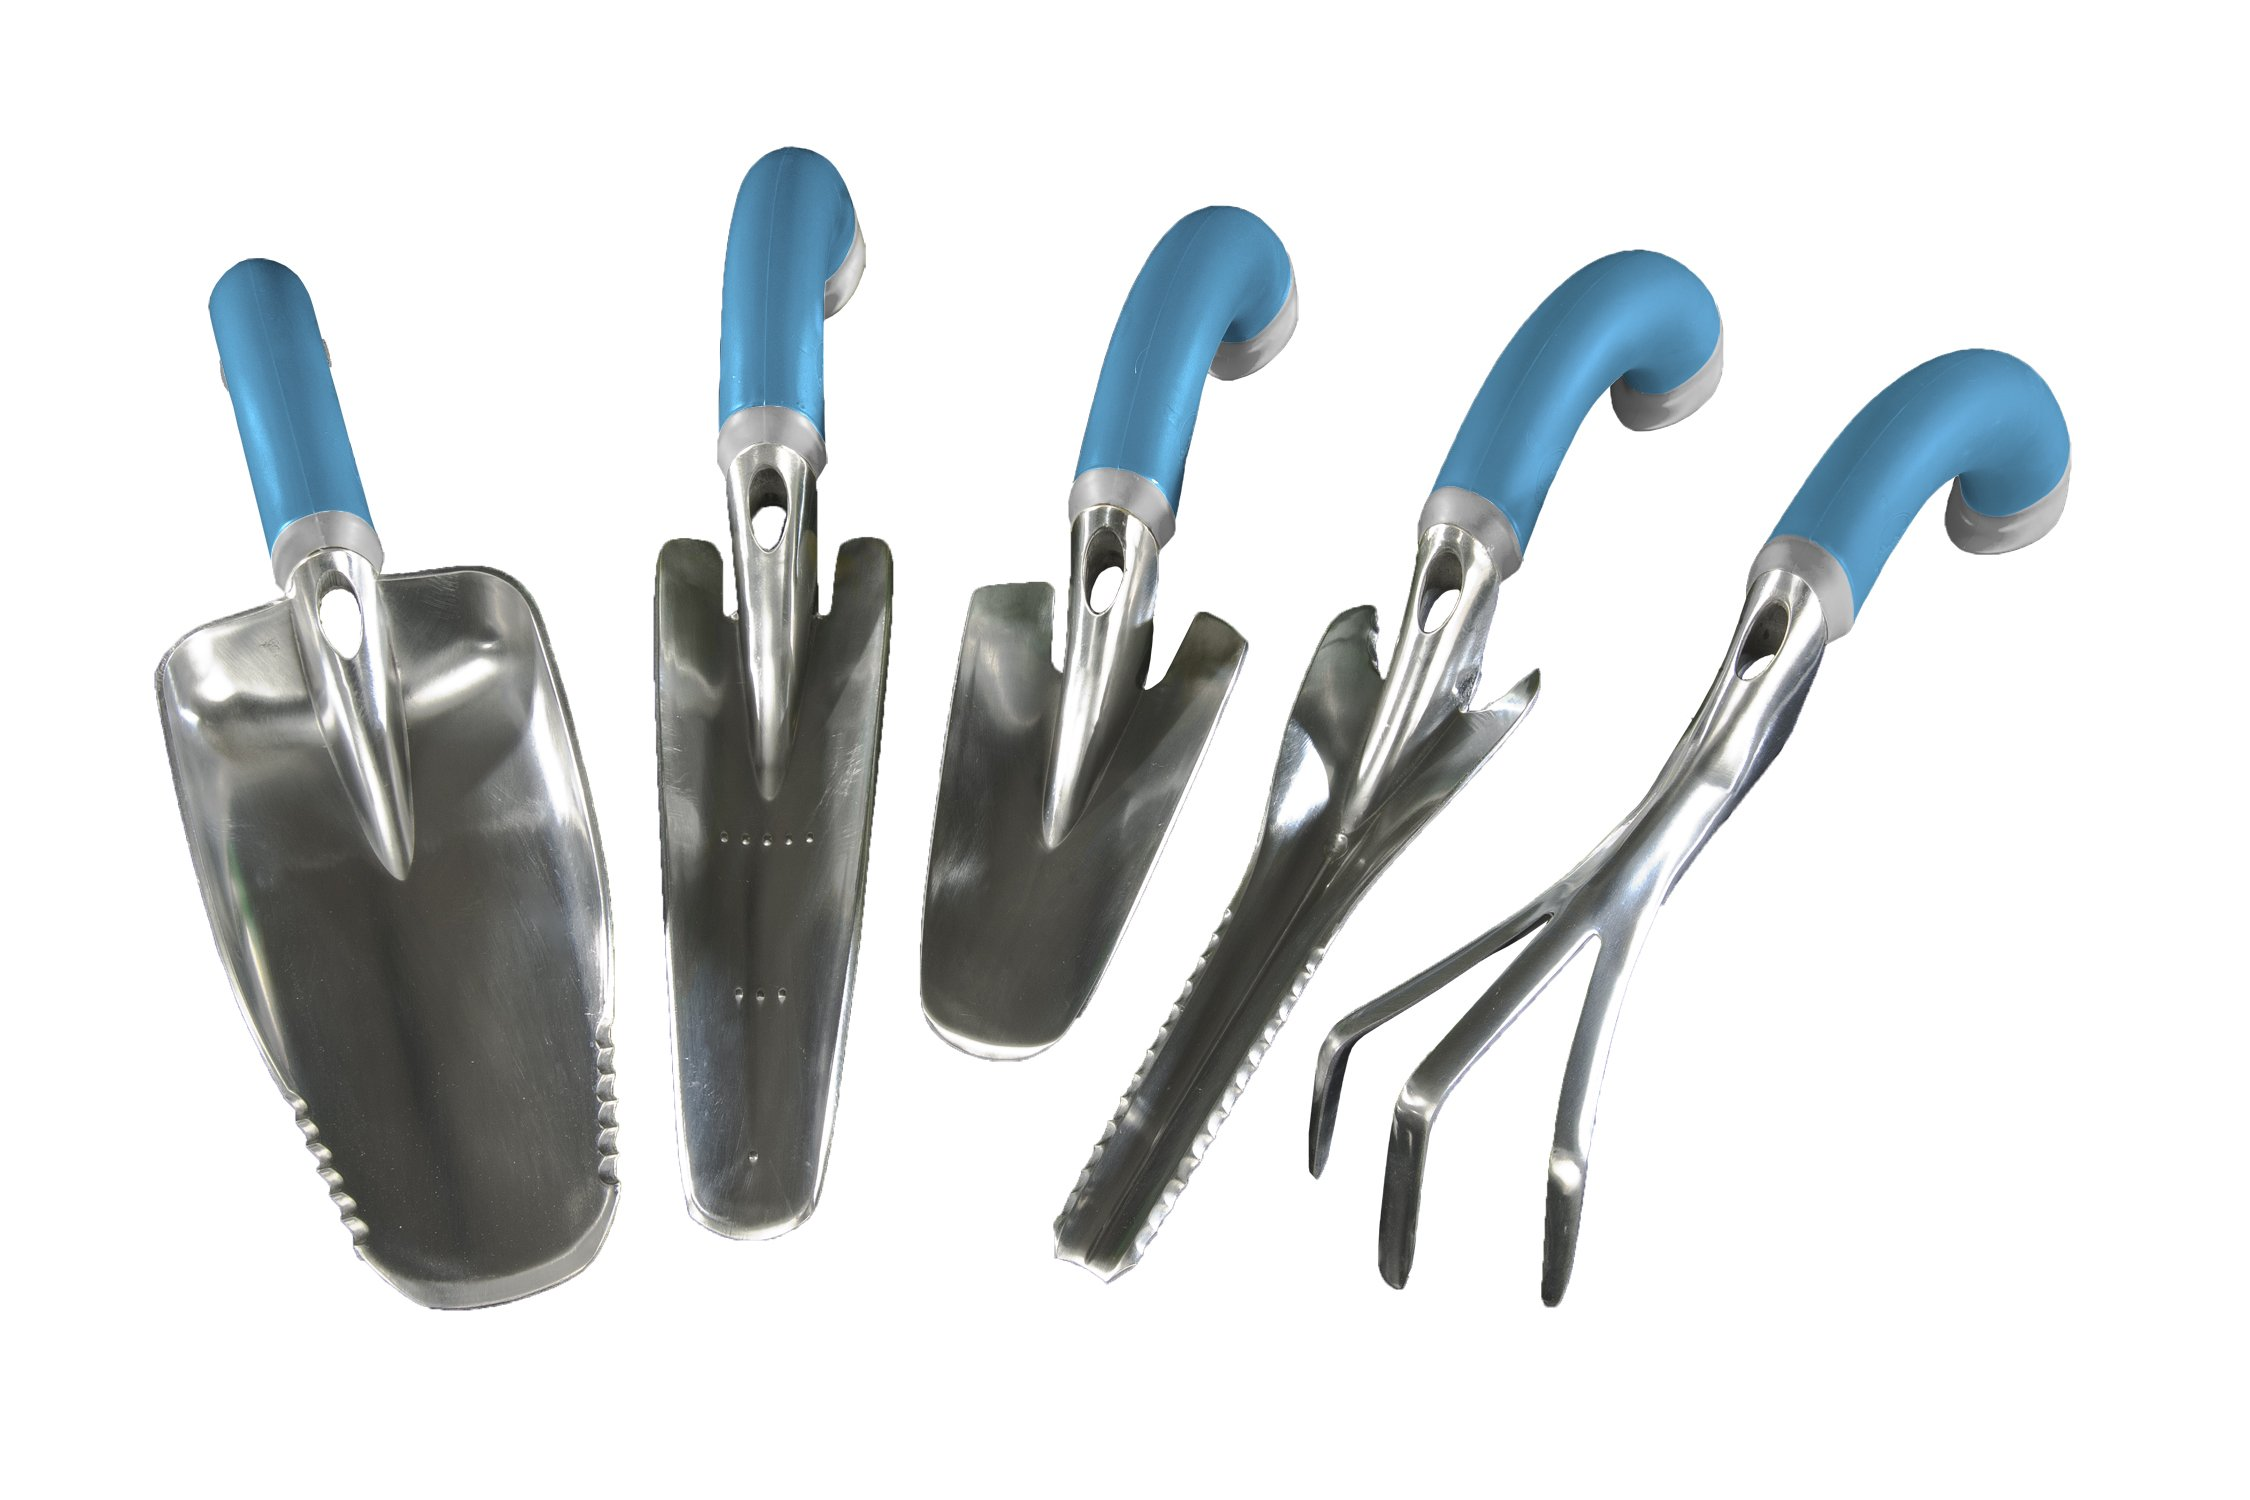 Radius Garden 5-Piece Blue Ergonomic Hand Tool Set, Includes Trowel, Transplanter, Weeder, Cultivator, and Scooper